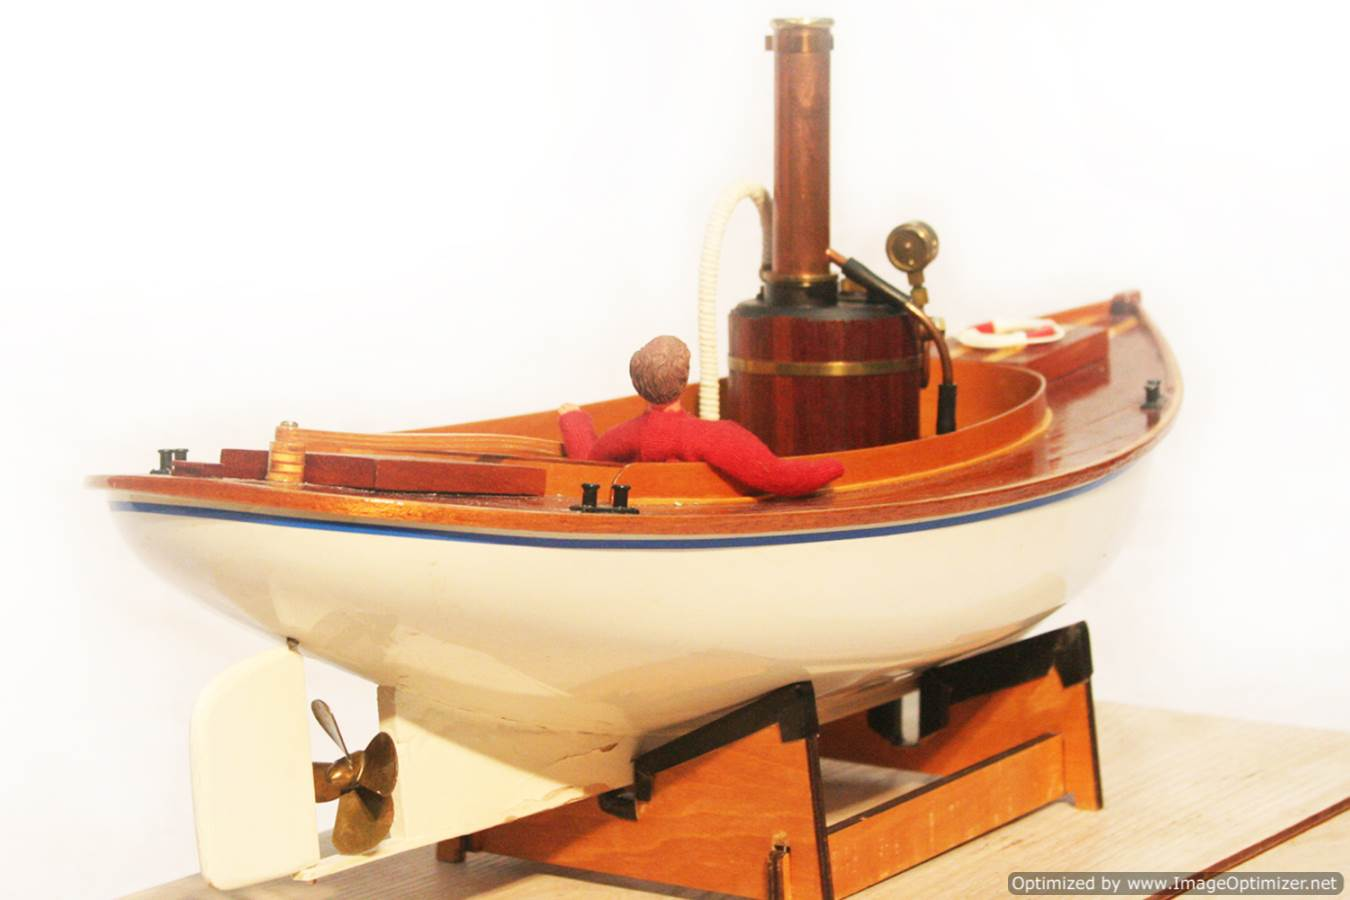 test anna-cheddar-steam-boat-live-steam-model-for-sale-16-optimized